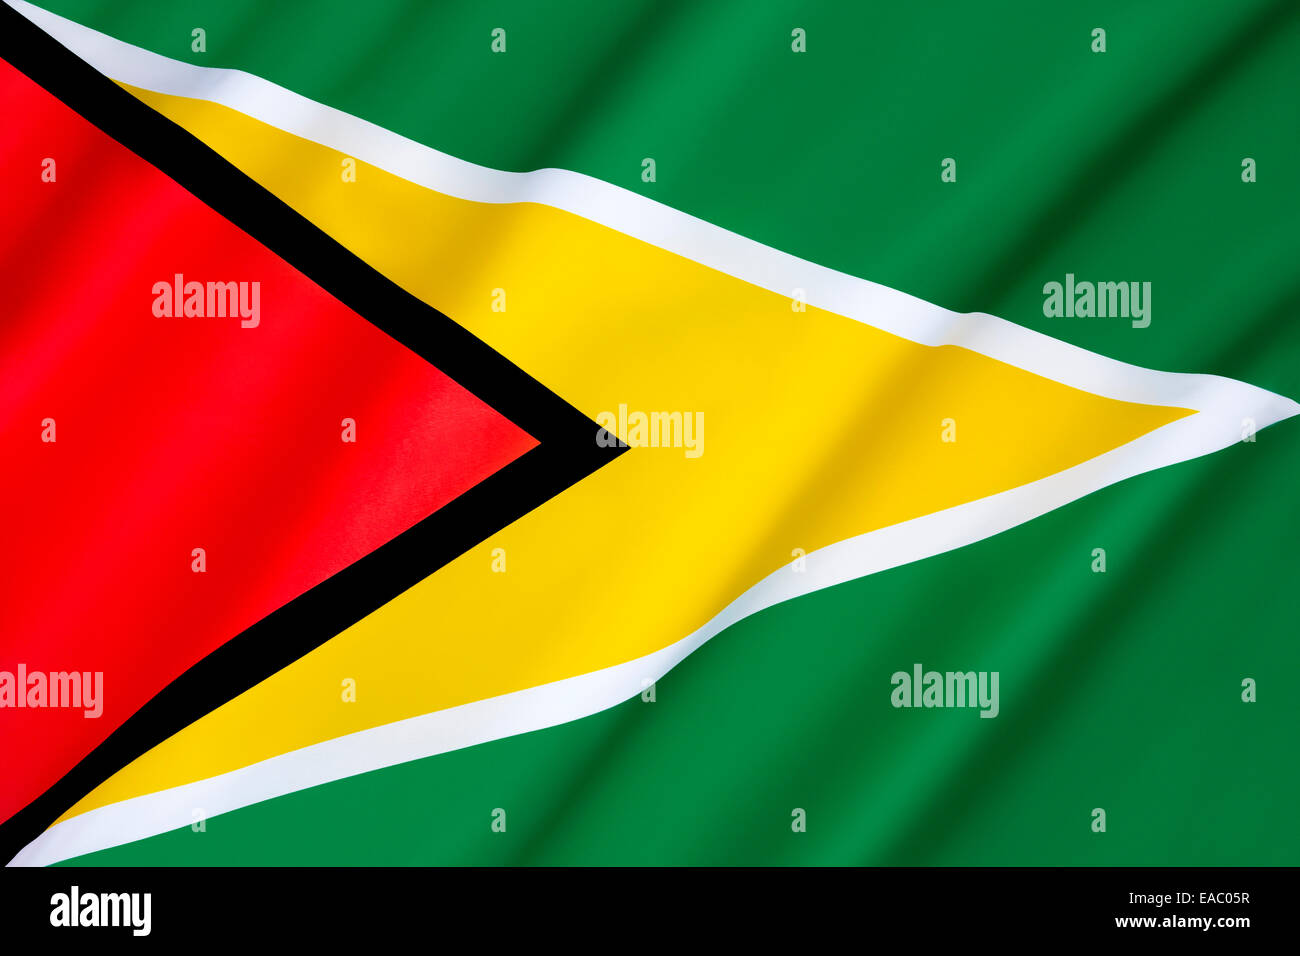 Flag of Guyana - Stock Image